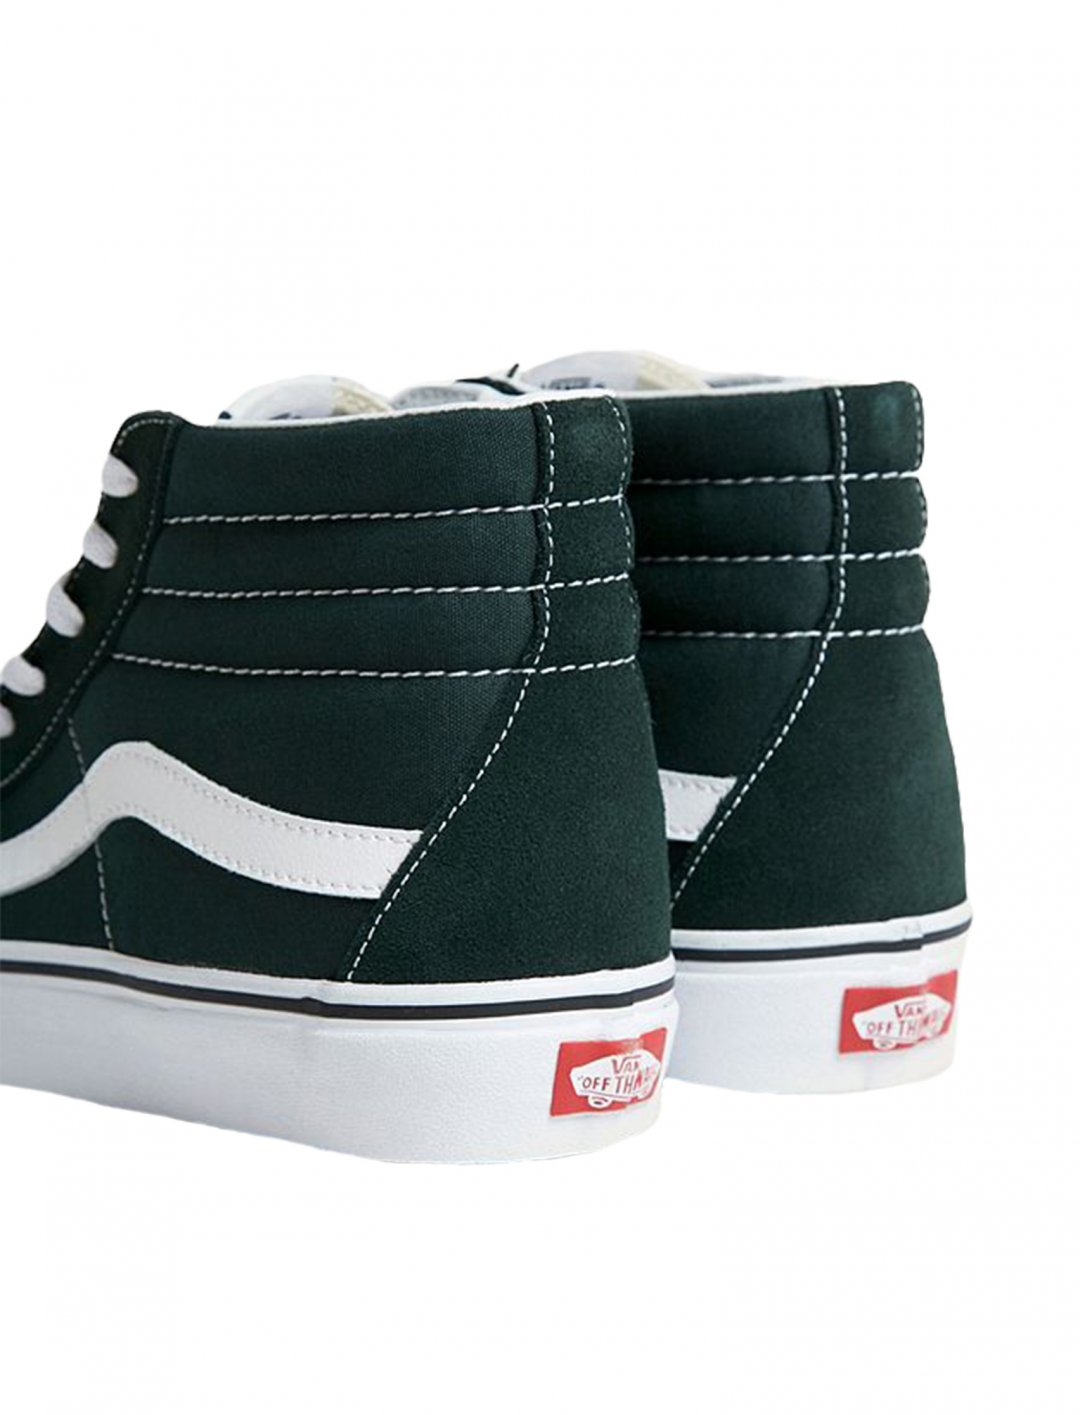 "Vans Sk8-Hi Green Trainers {""id"":12,""product_section_id"":1,""name"":""Shoes"",""order"":12} Vans"